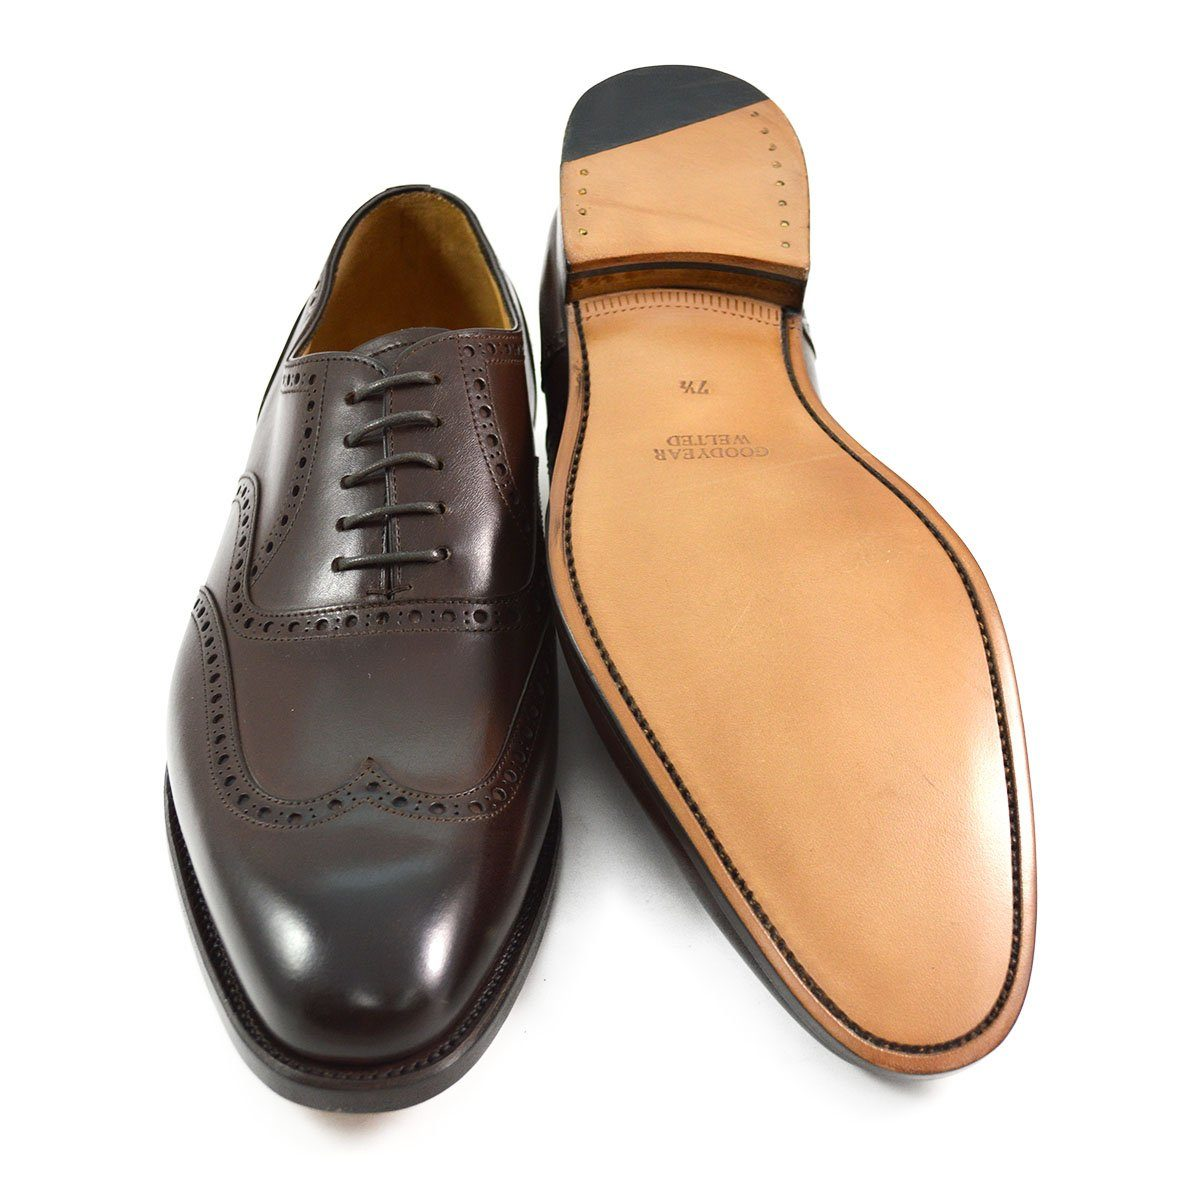 d535e857f847 AFPOS HARRY Brogue in Dark Brown Calf - A Fine Pair of Shoes - English  Handmade Shoes and Brogues Online